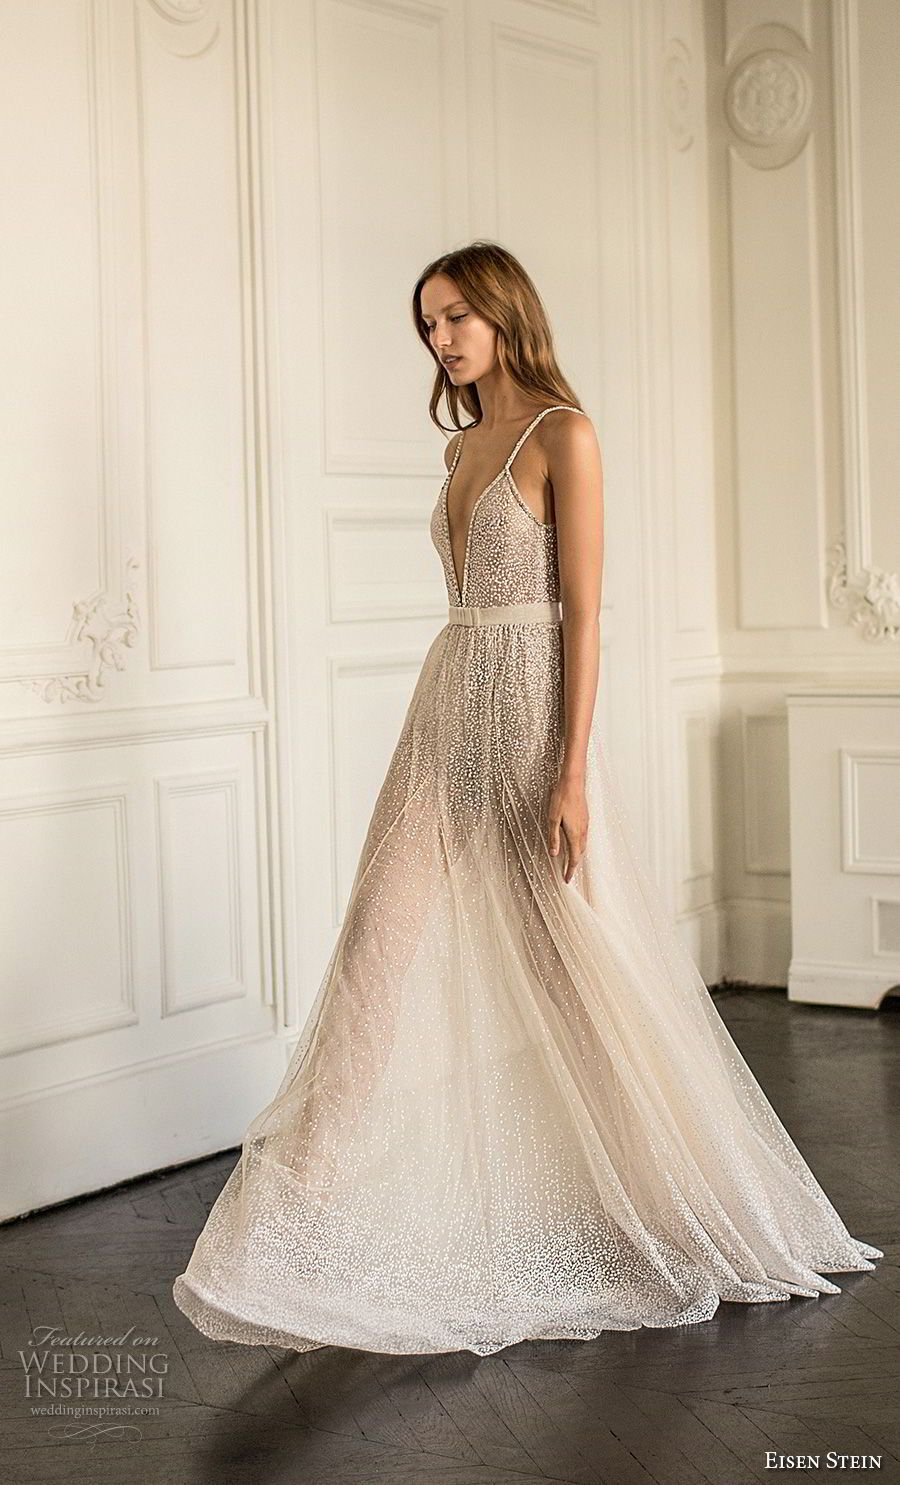 Eisen stein wedding dress u blush bridal collection romantic